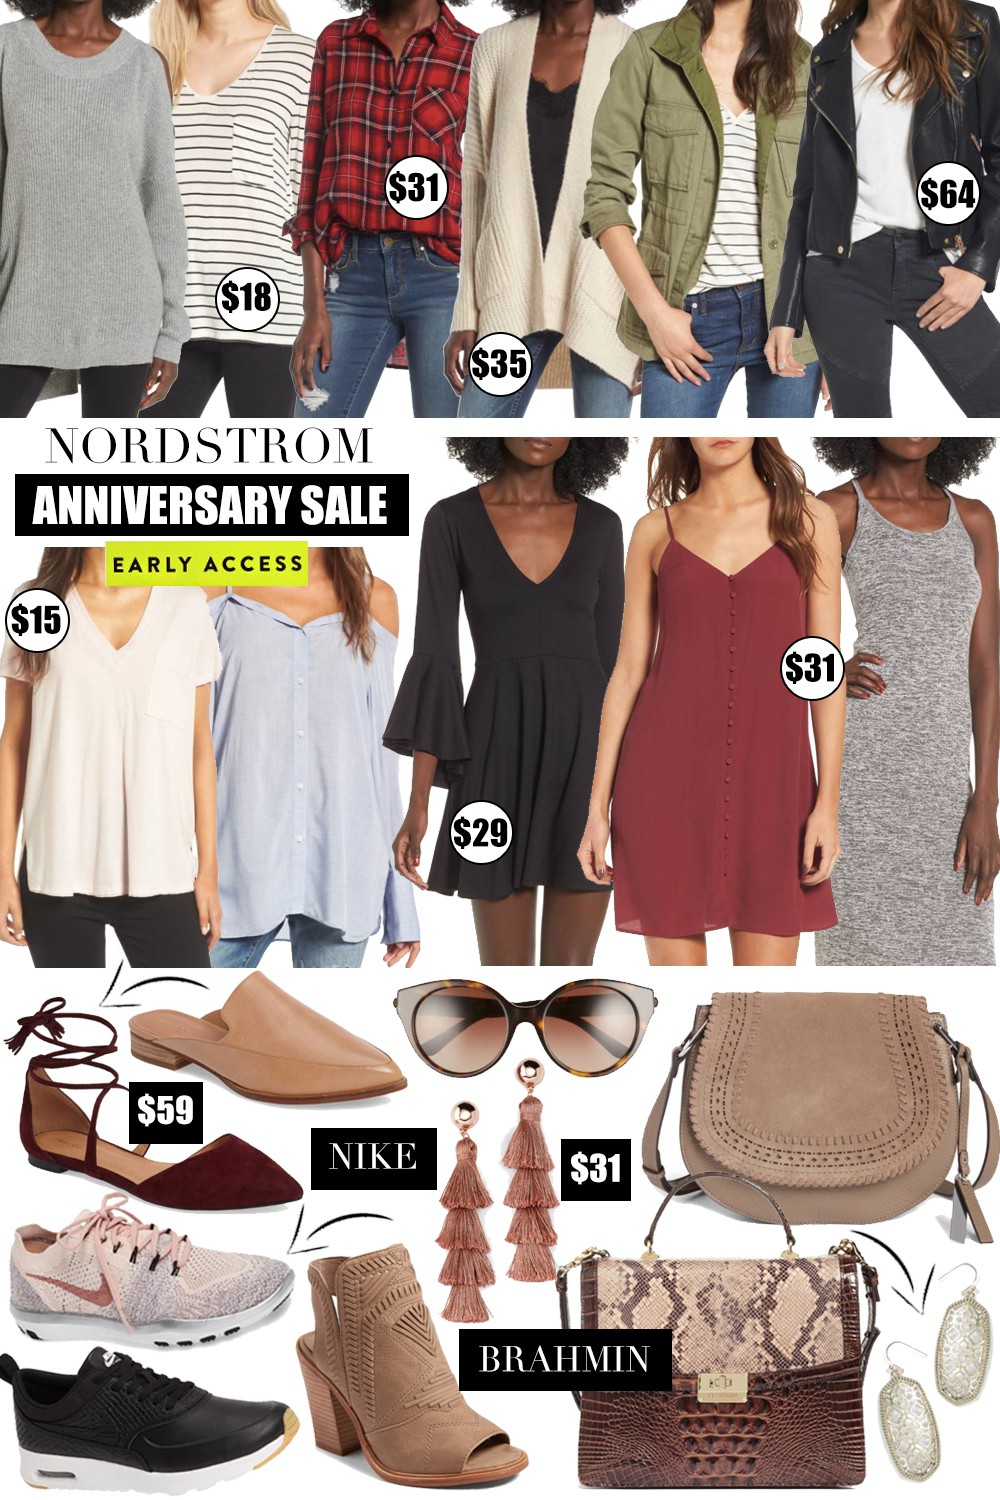 christmas in july has arrived happy nordstrom anniversary sale today is the first day of early access which means only nordstrom creditdebit card - Nordstrom After Christmas Sale